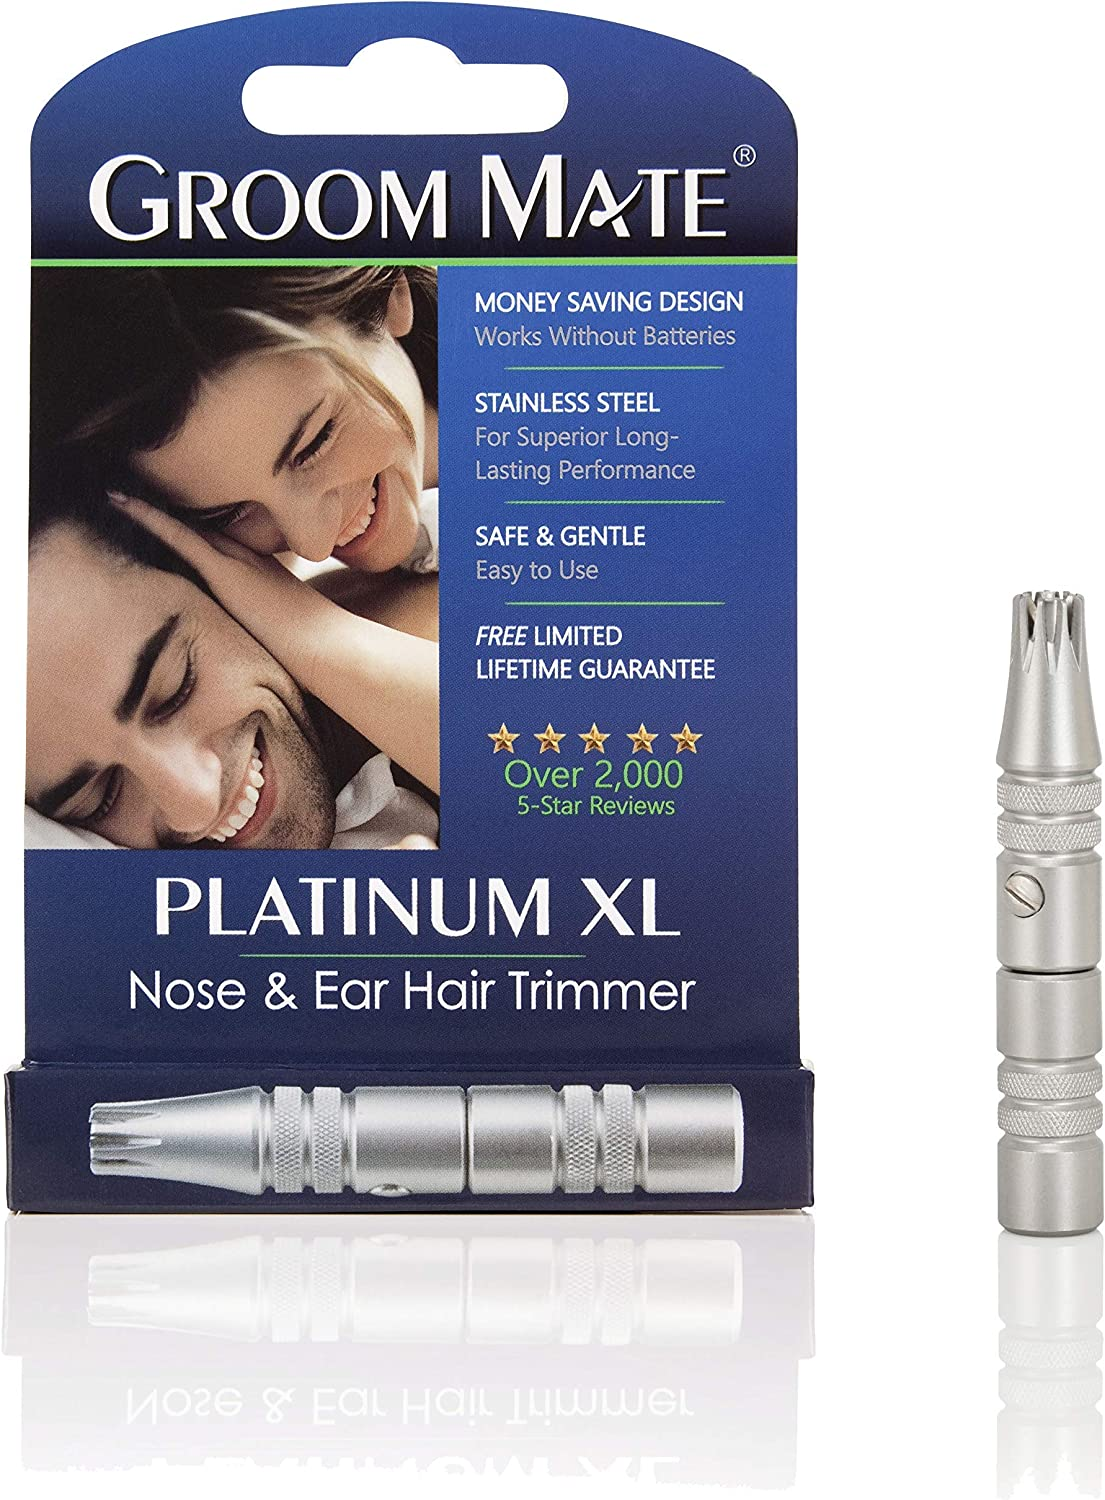 Ear and Nose Trimmer